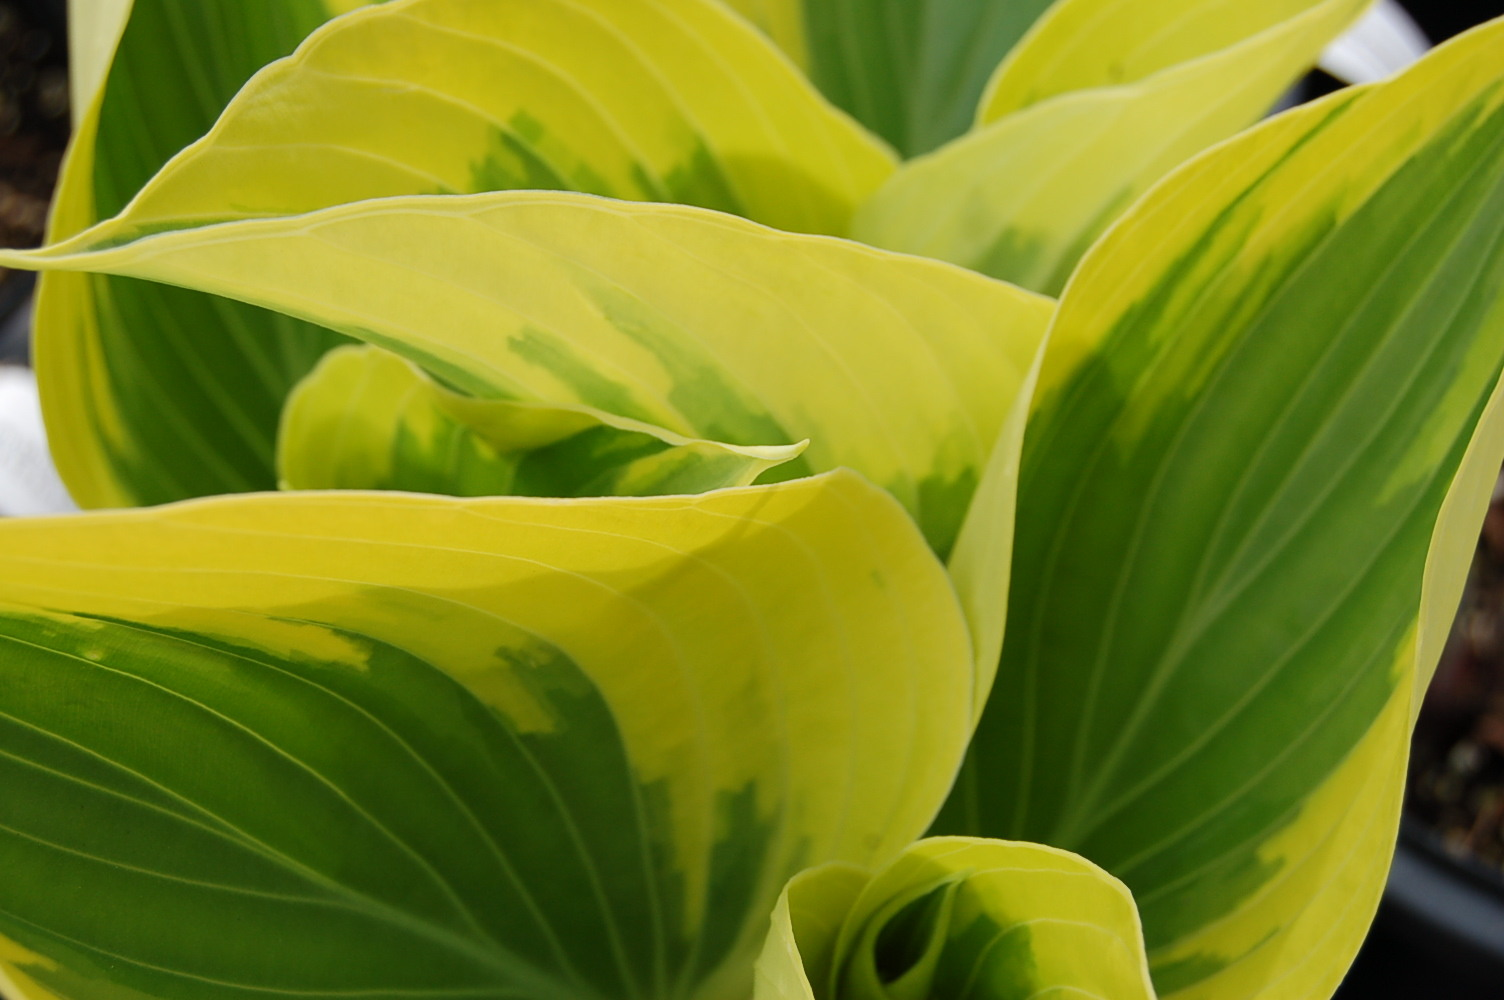 Inspirational Massachusetts When To Transplant Hostas Transplant Kentucky When To Transplant Hostas When Is Time To Separate Transplant When Is Time To Separate Michigan houzz-03 When To Transplant Hostas